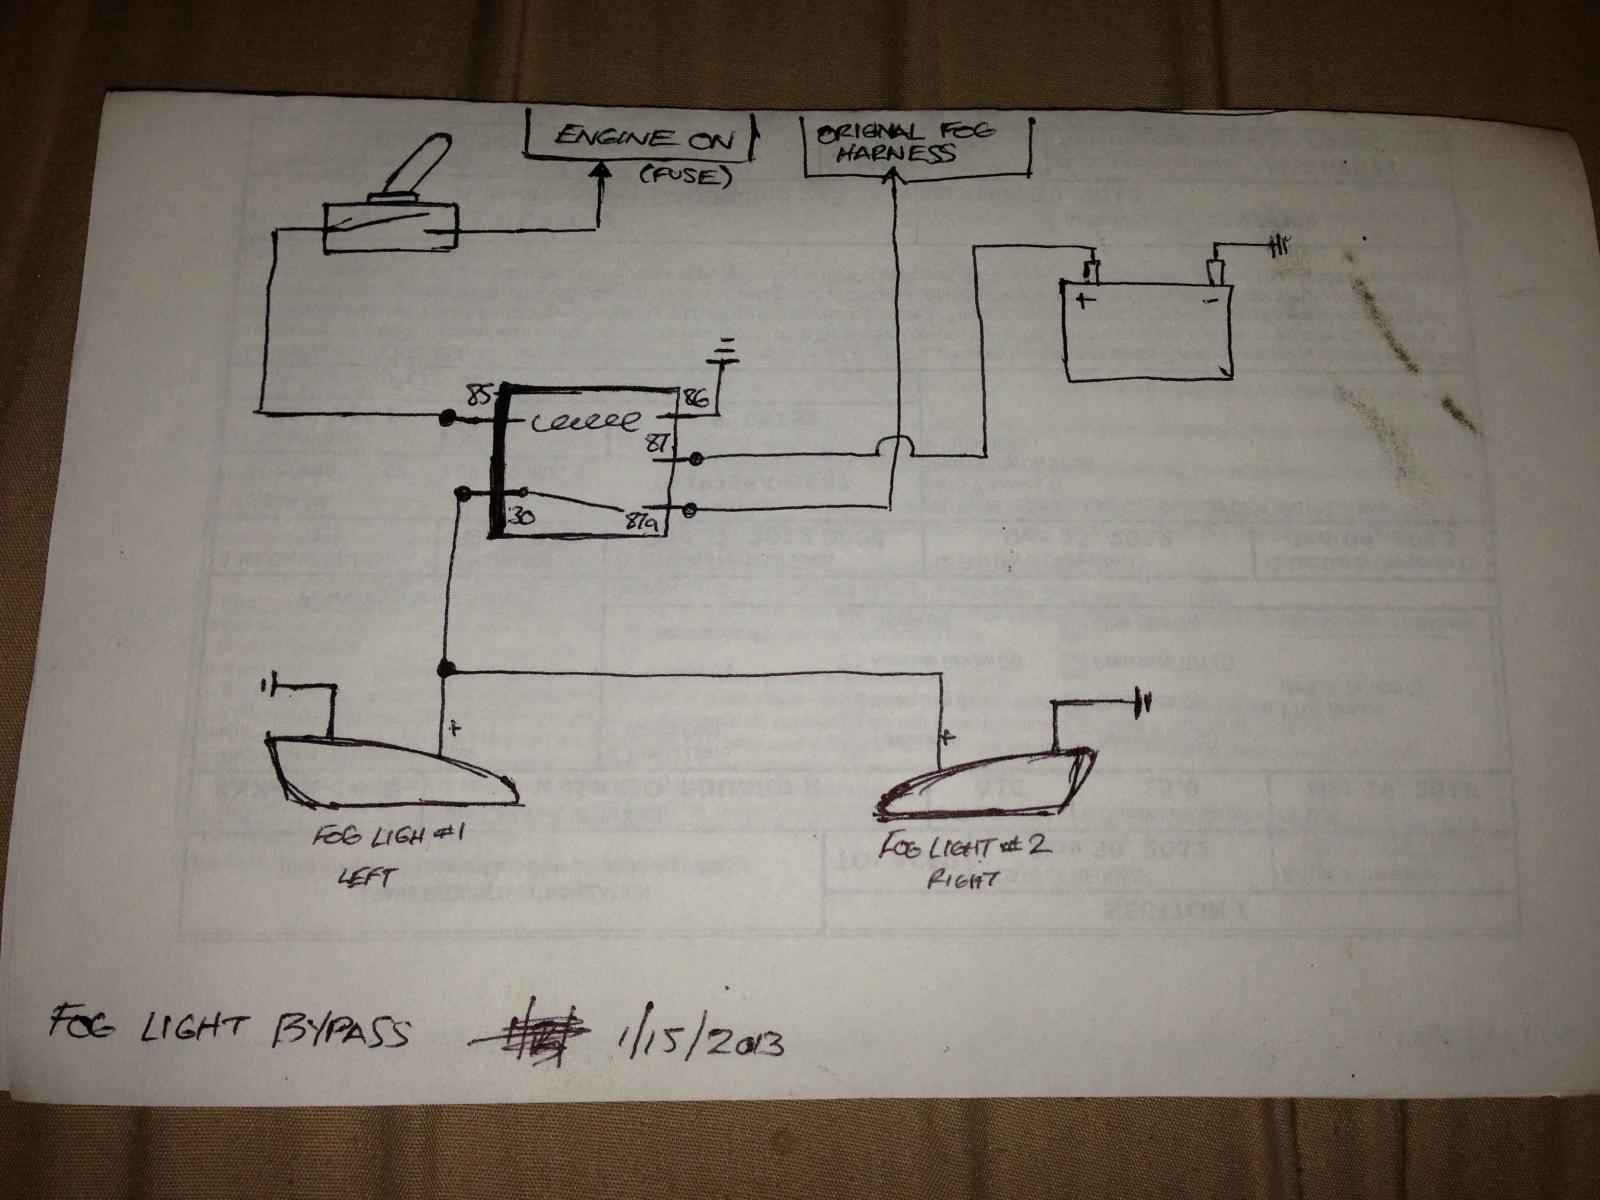 Fog Lights Wiring Diagram : Simple wiring diagram to bypass foglights works w o